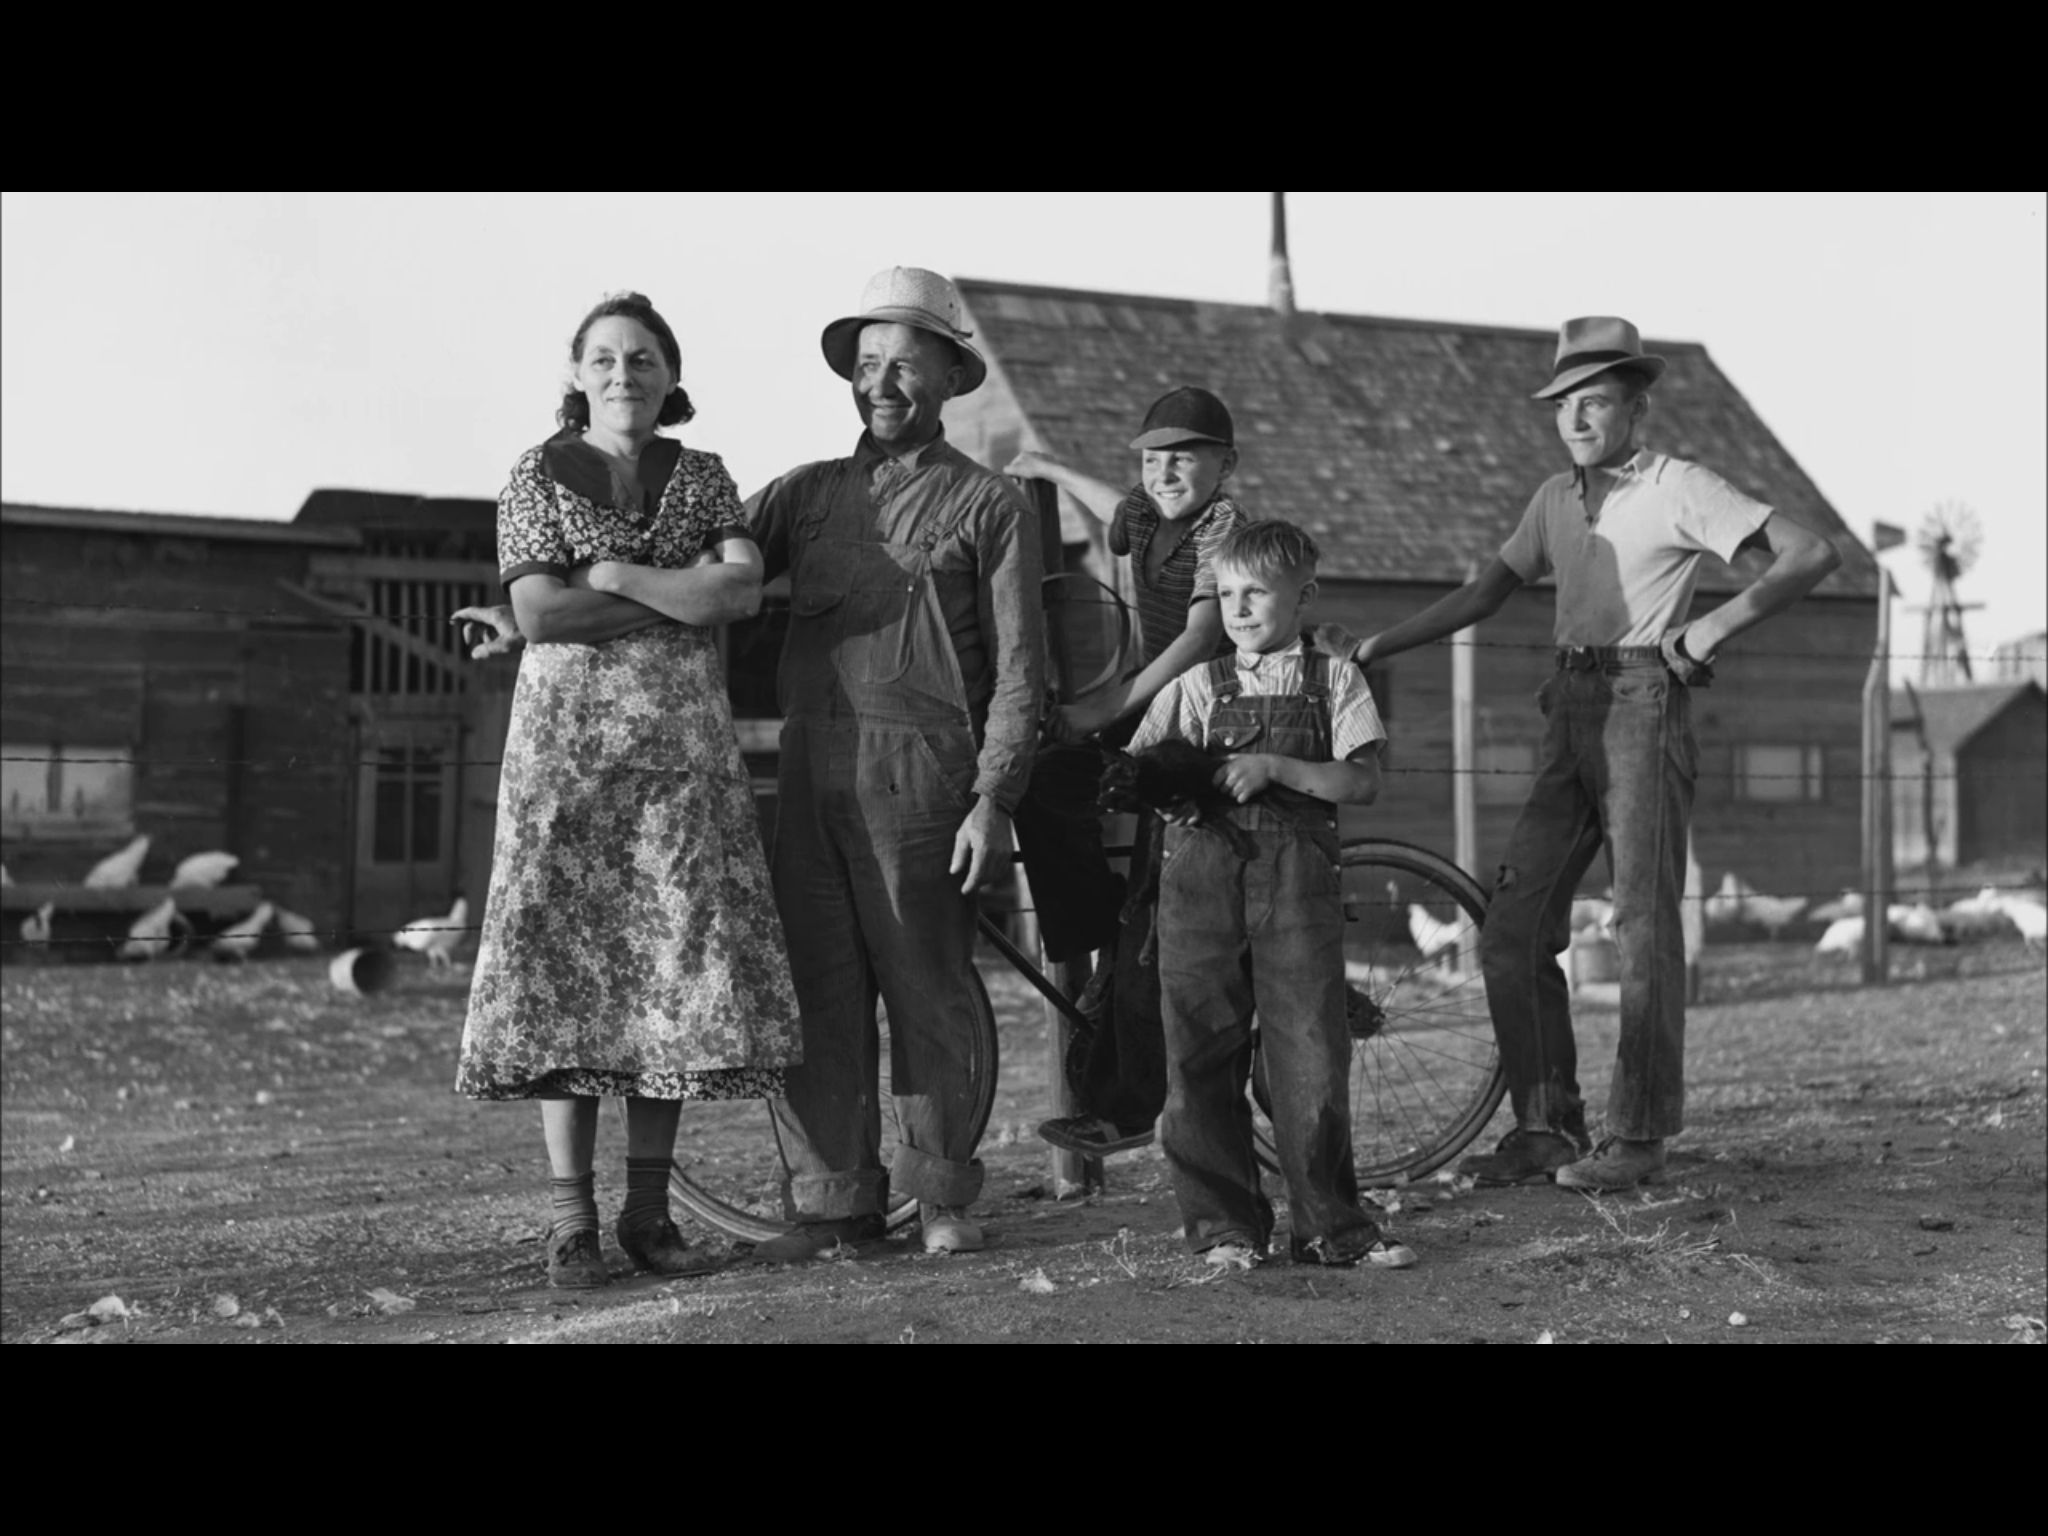 Memories of the 1930s dust bowl. Dust bowl, 1930s